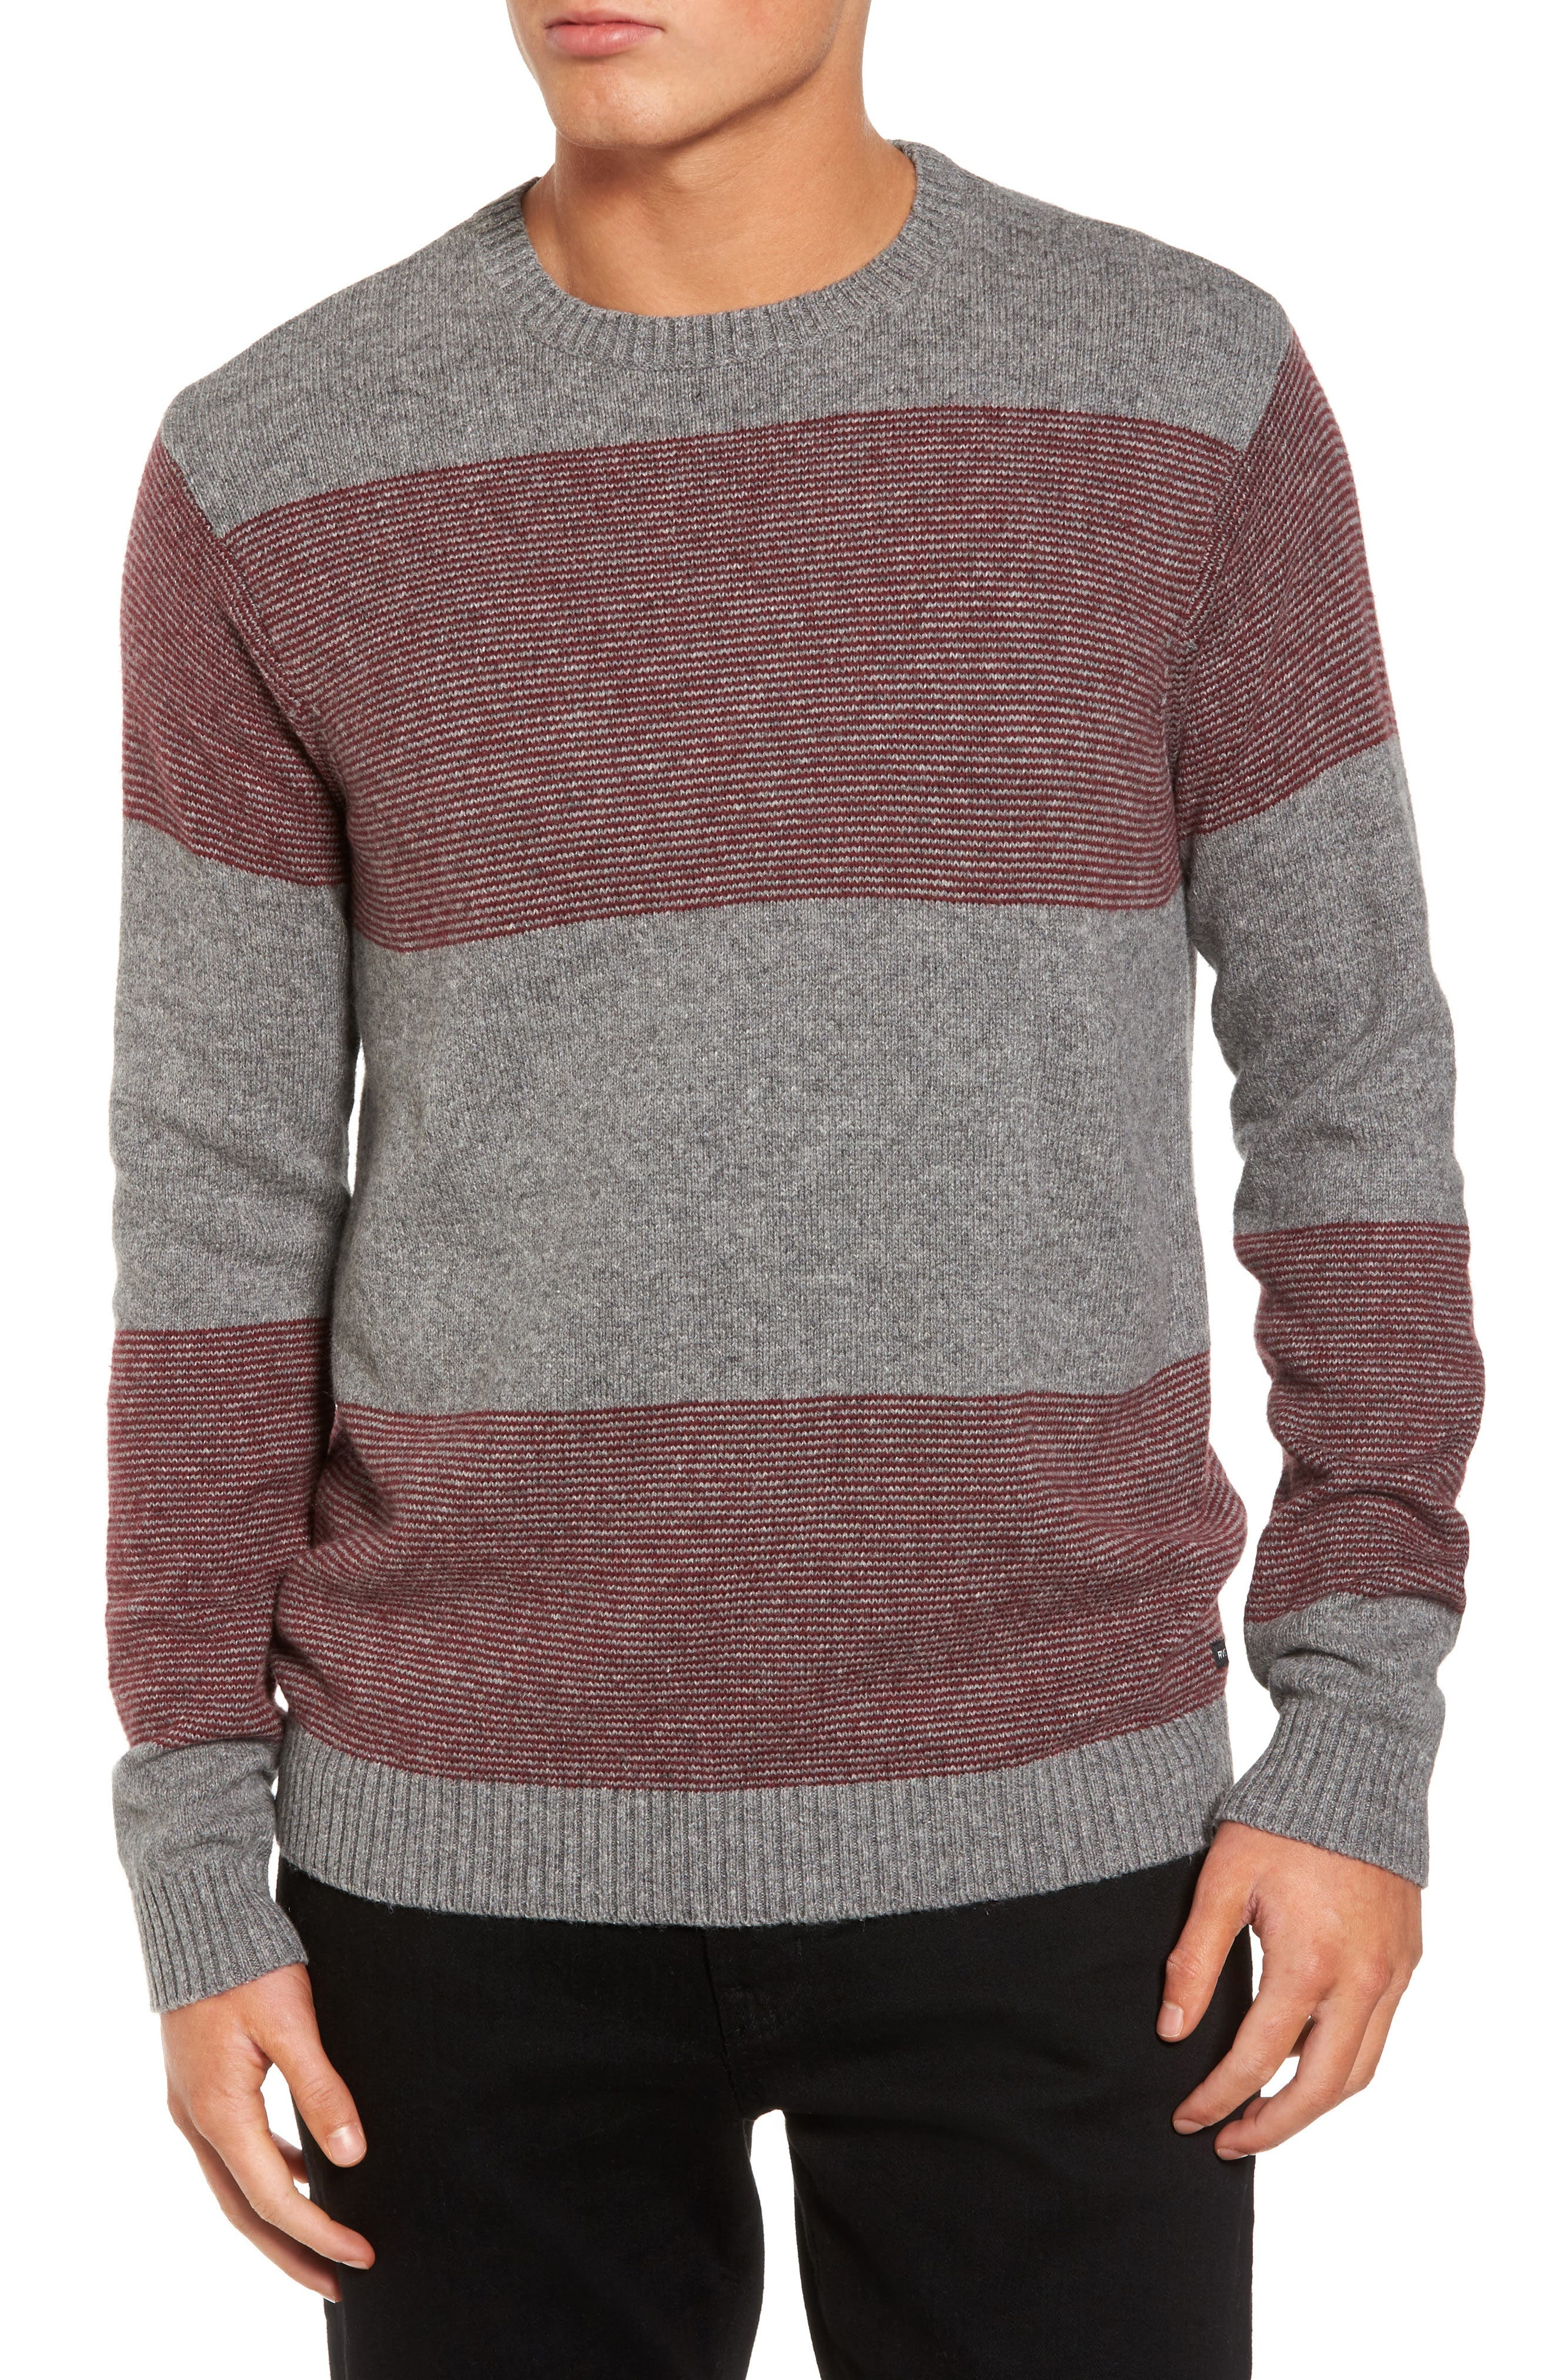 Channels Crewneck Sweater,                             Main thumbnail 1, color,                             Athletic Heather